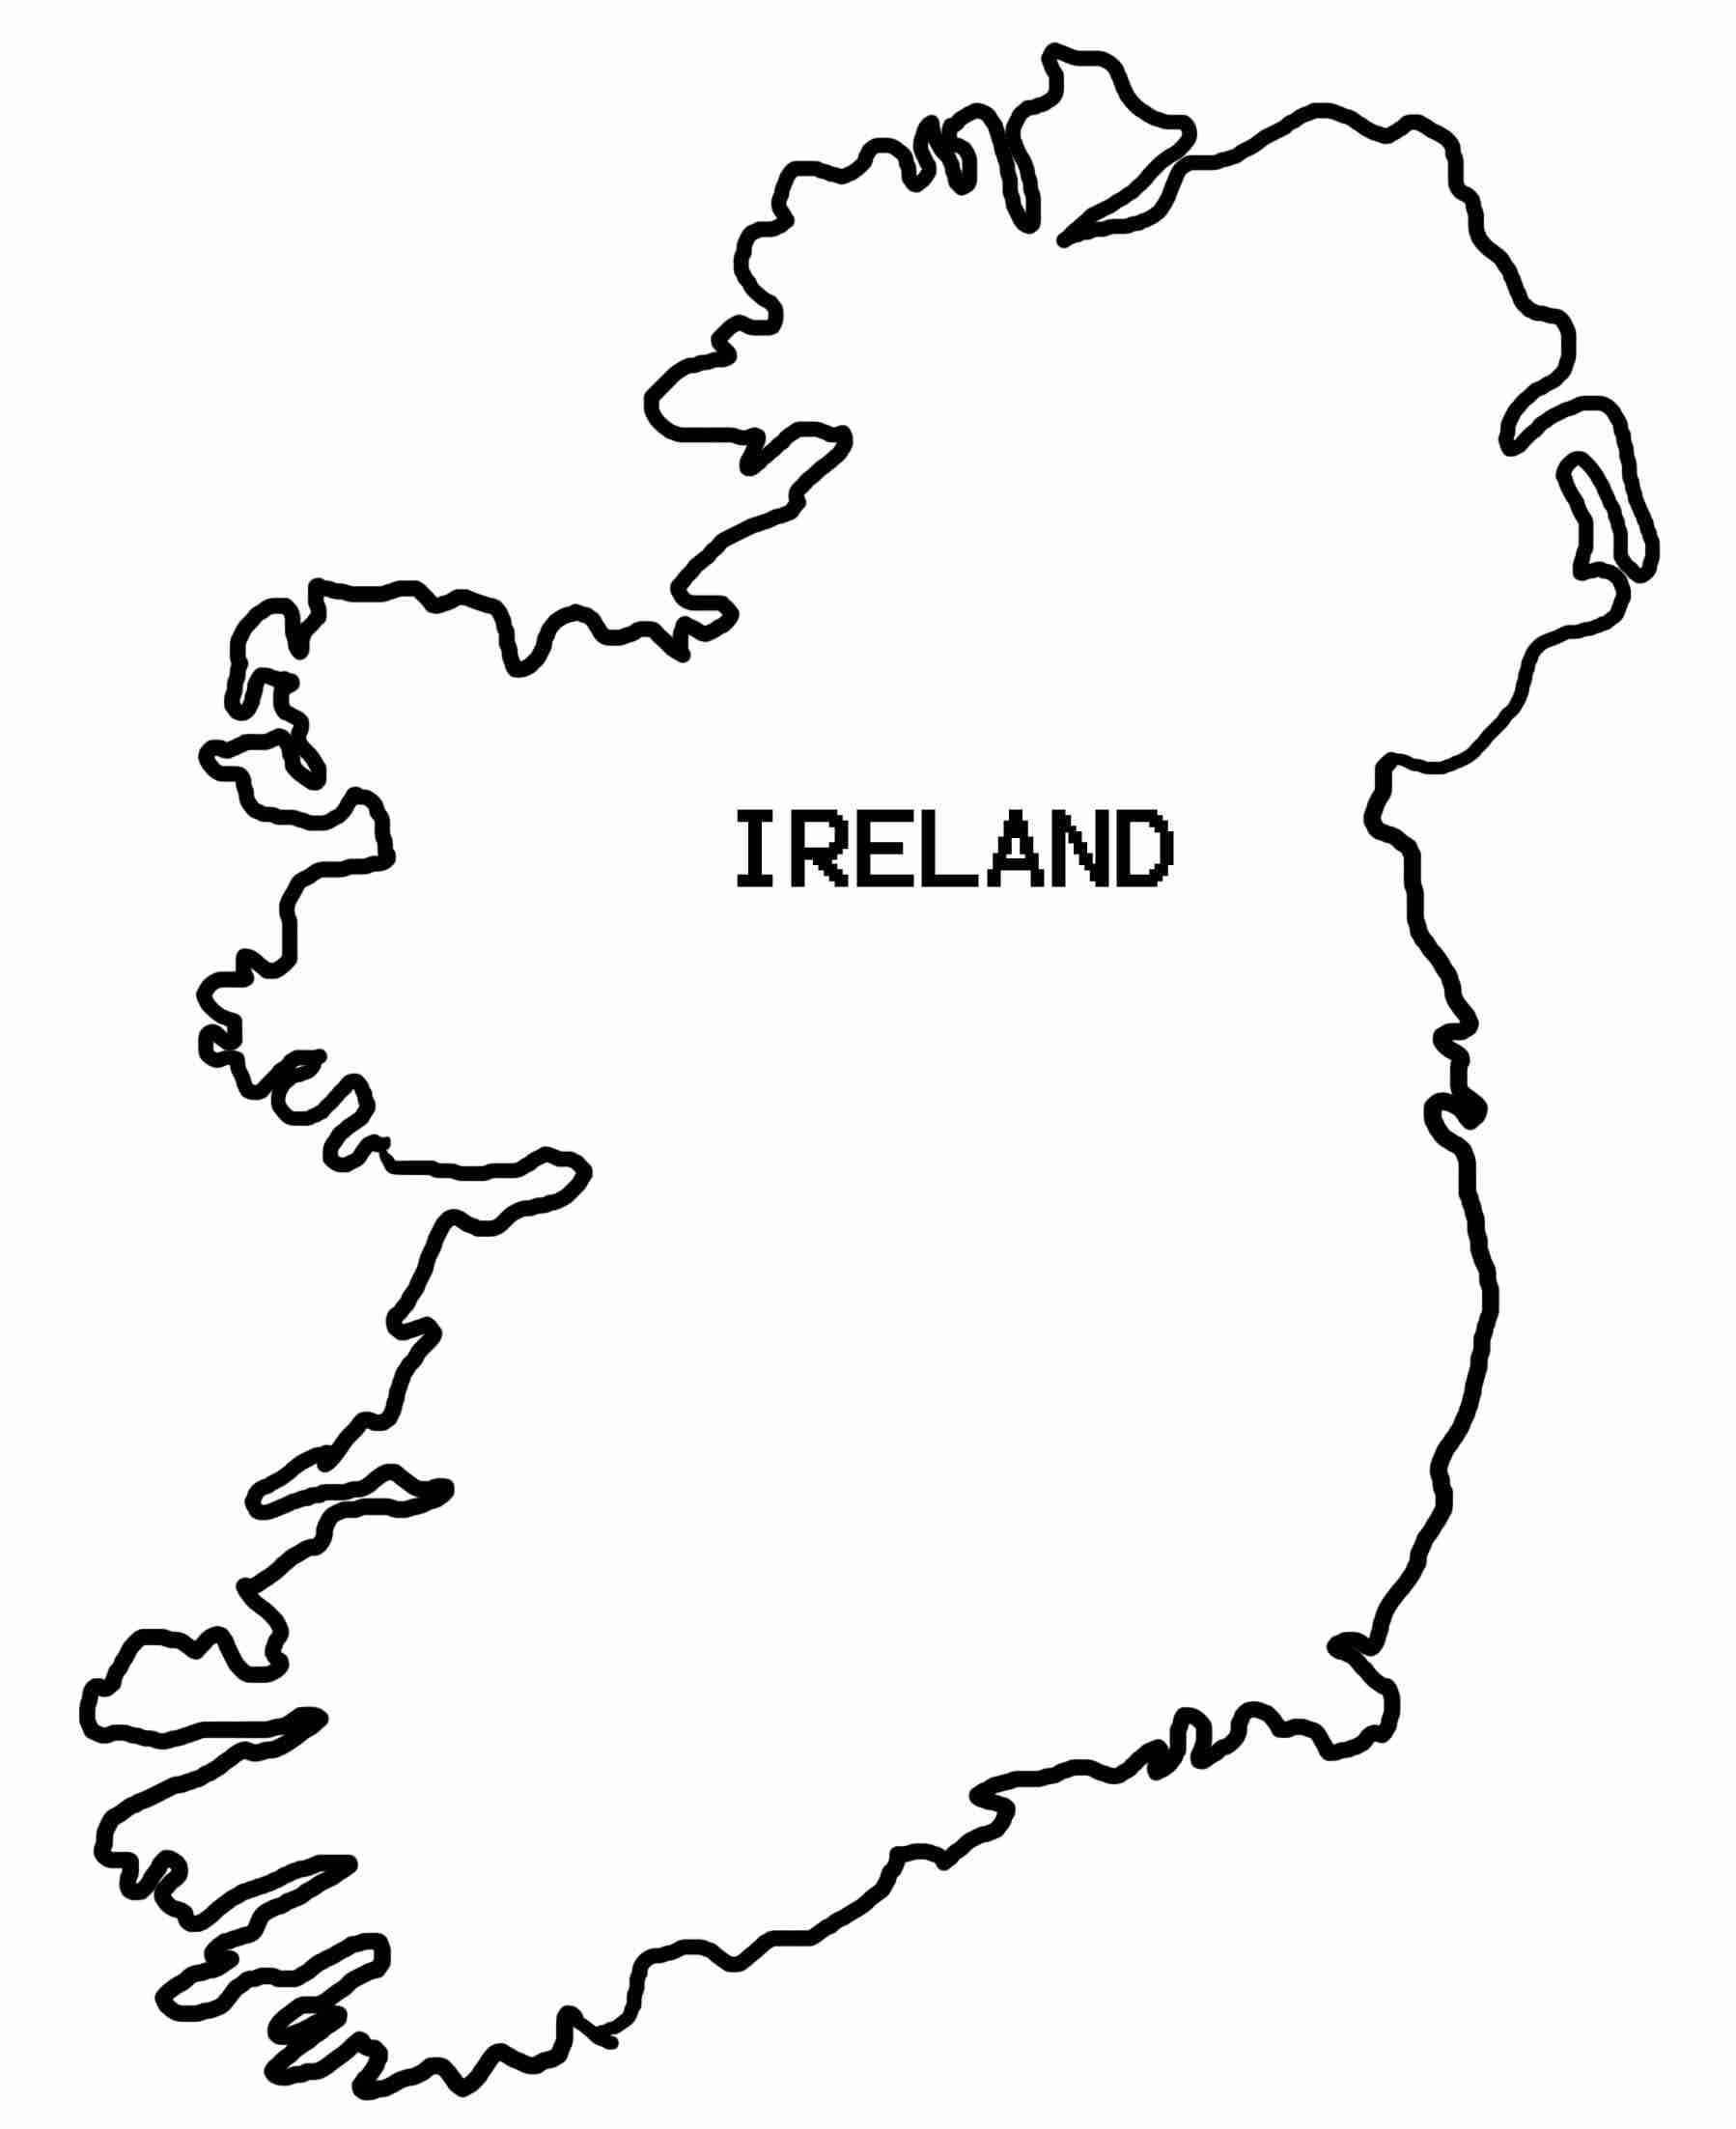 The Best Free Irish Coloring Page Images Download From 50 Free